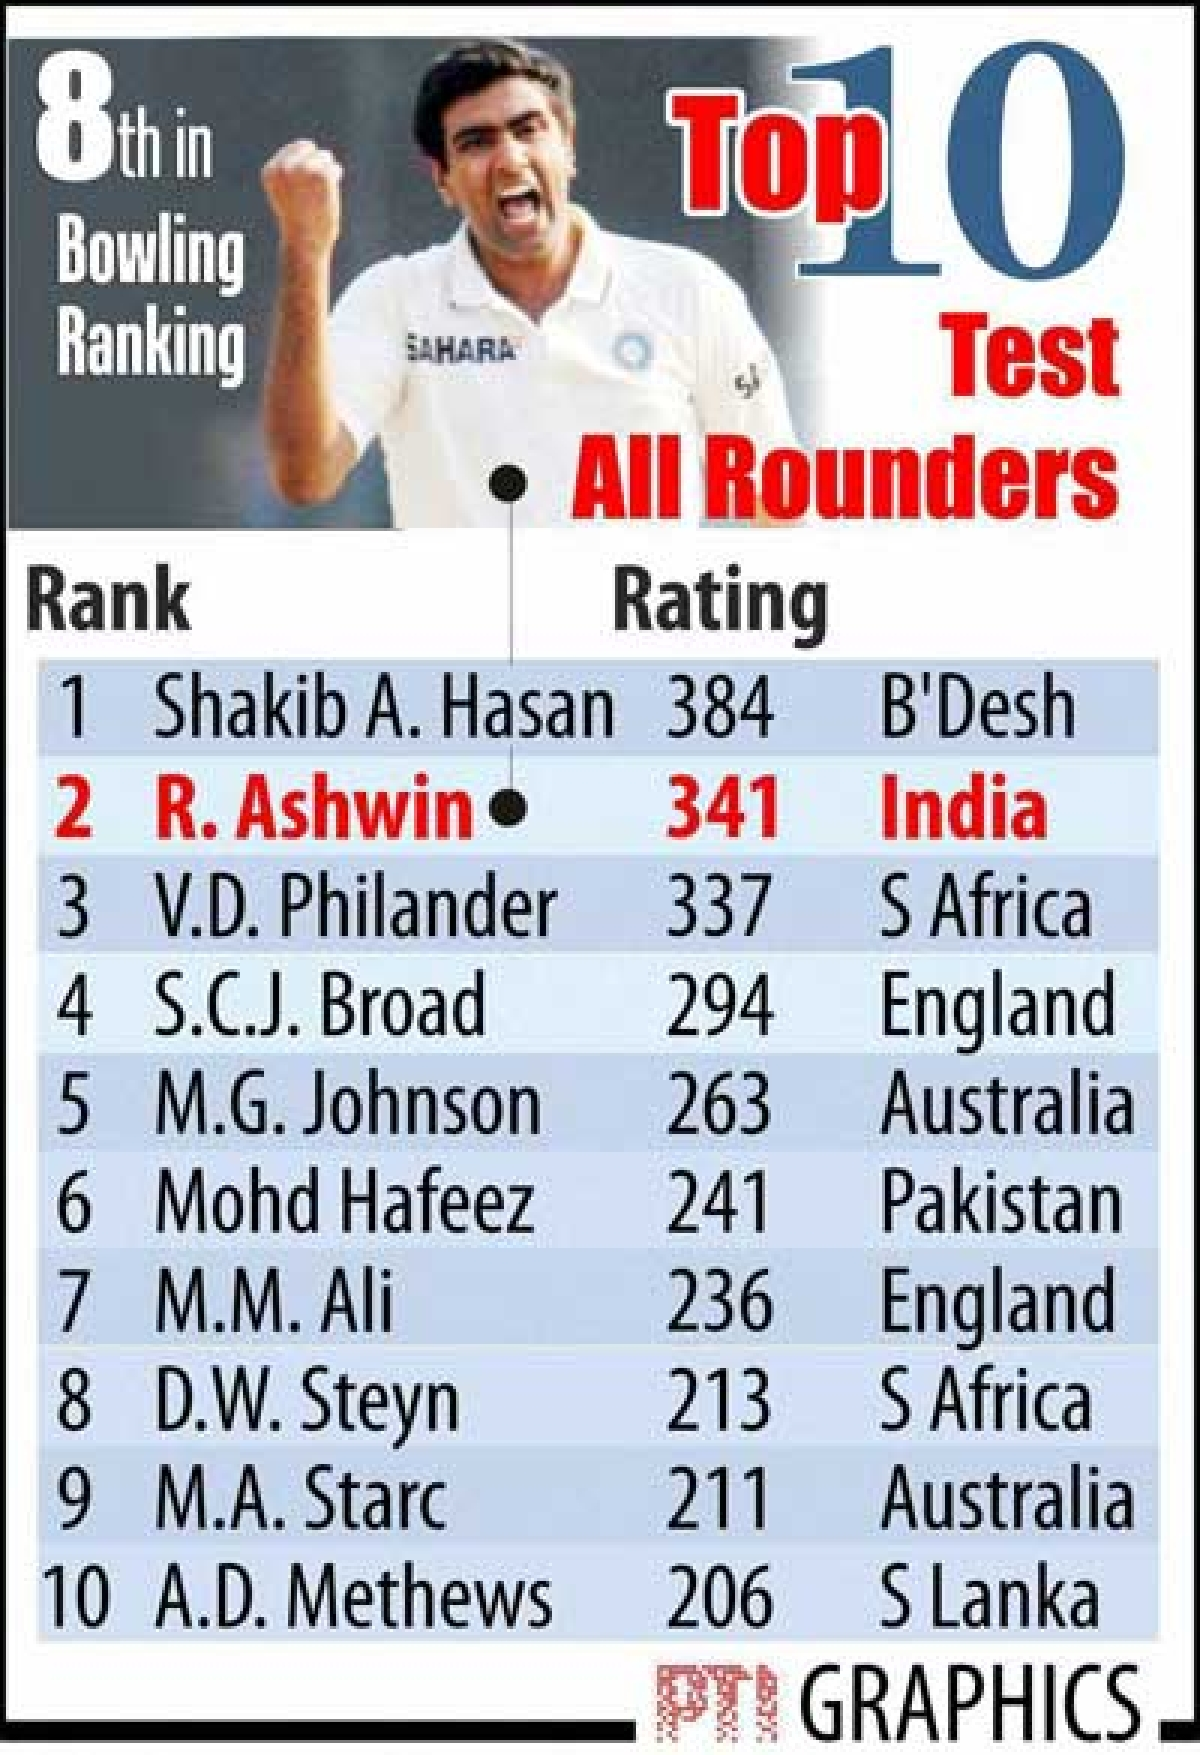 R Ashwin on the rise in ICC rankings